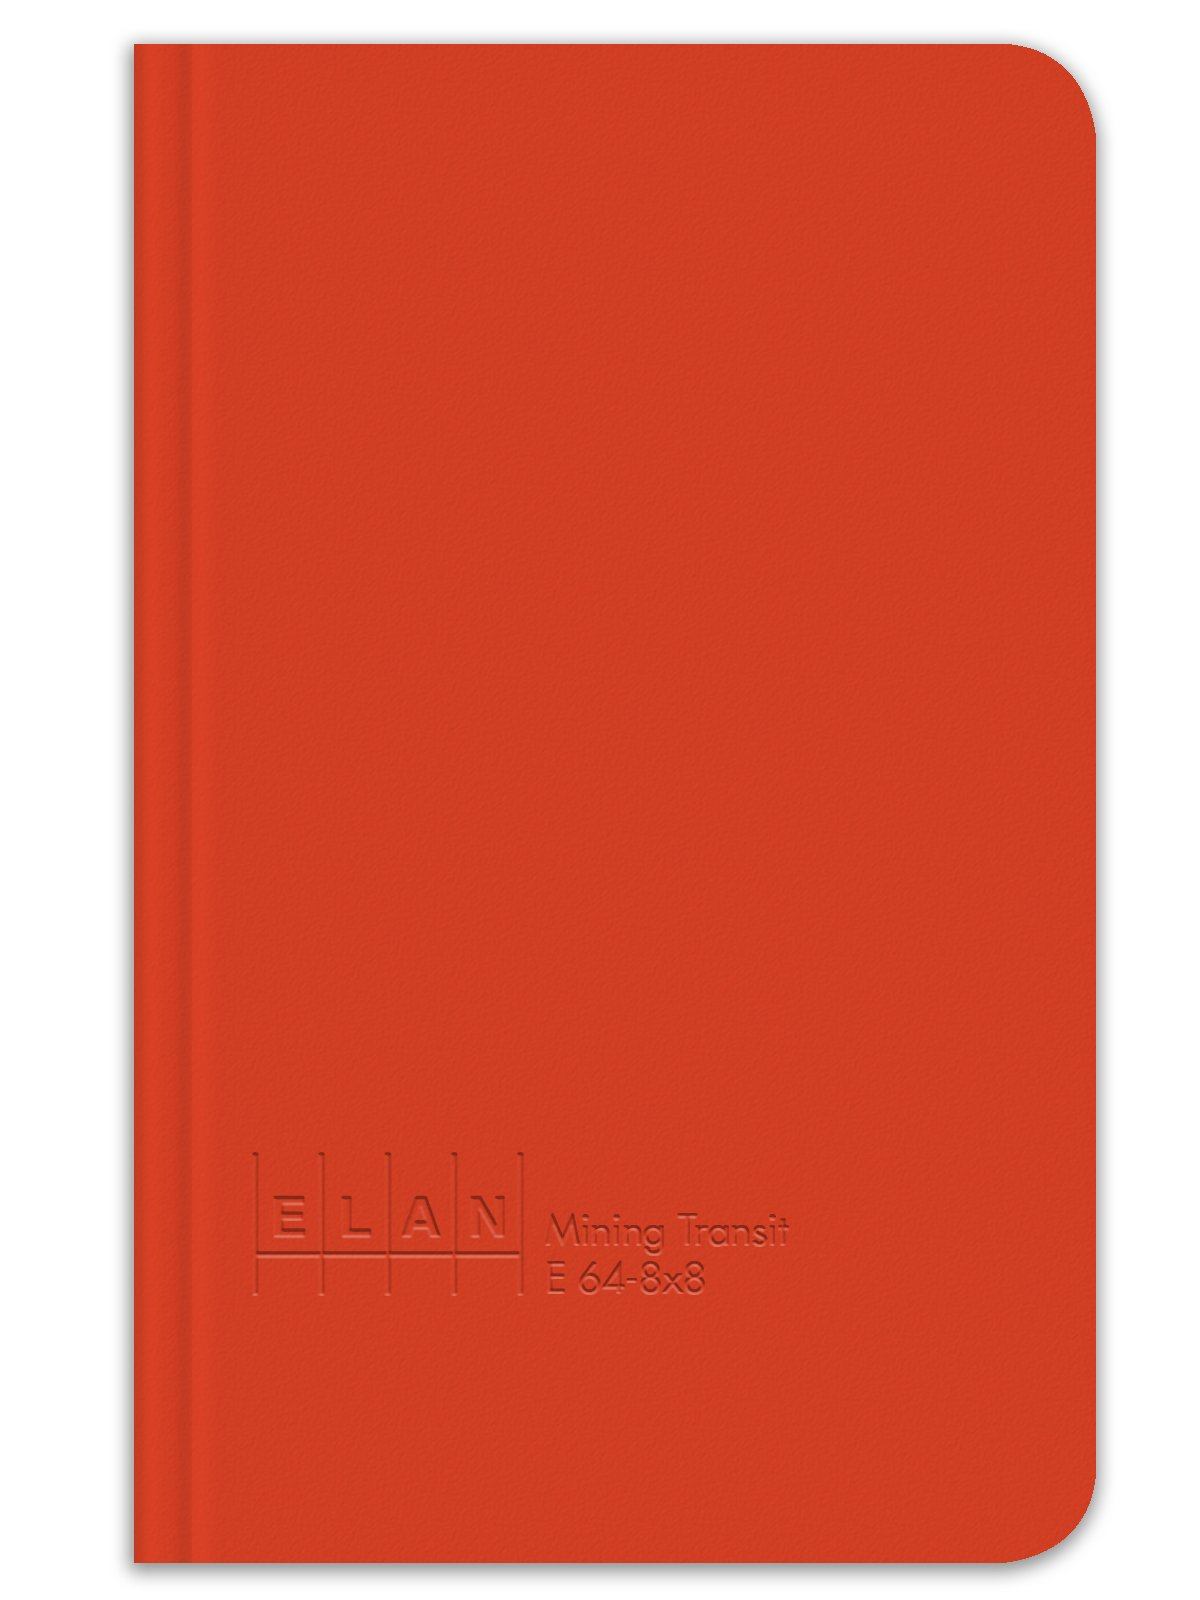 Elan Publishing E64-8x8 Org-24 Mining Transit Book, 4 ⅝ x 7 ¼, Bright Orange Cover, Grade: 12 to 12 (Pack of 24)